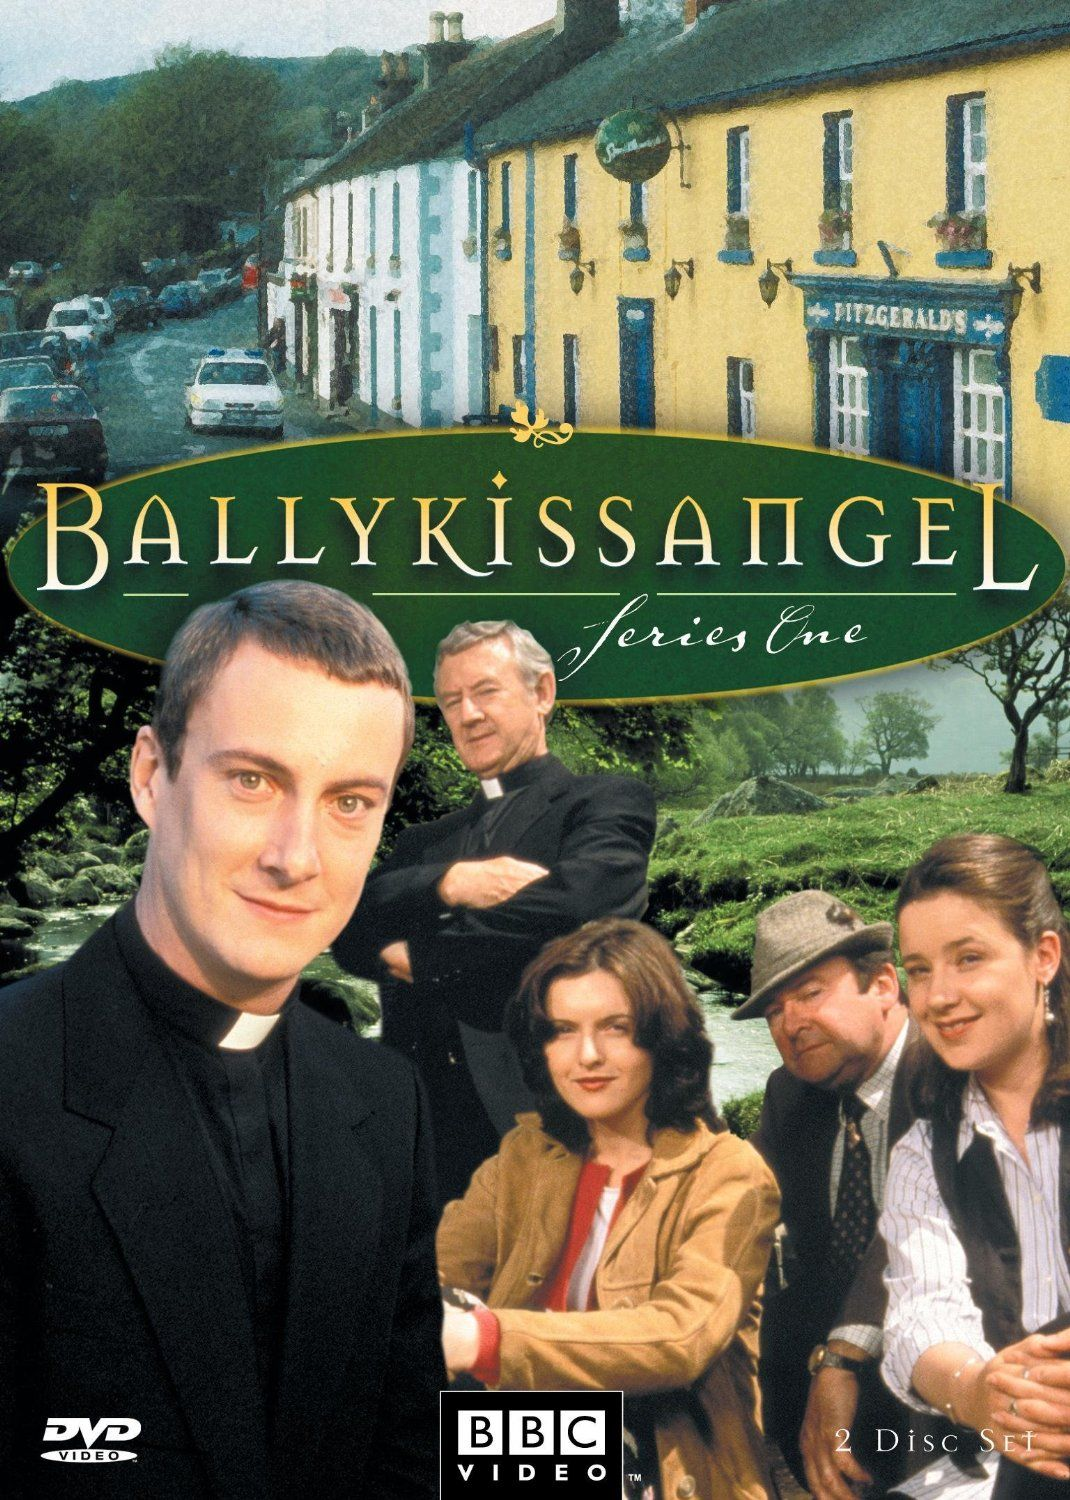 Ballykissangel Awesome Show About The People In An Irish Town